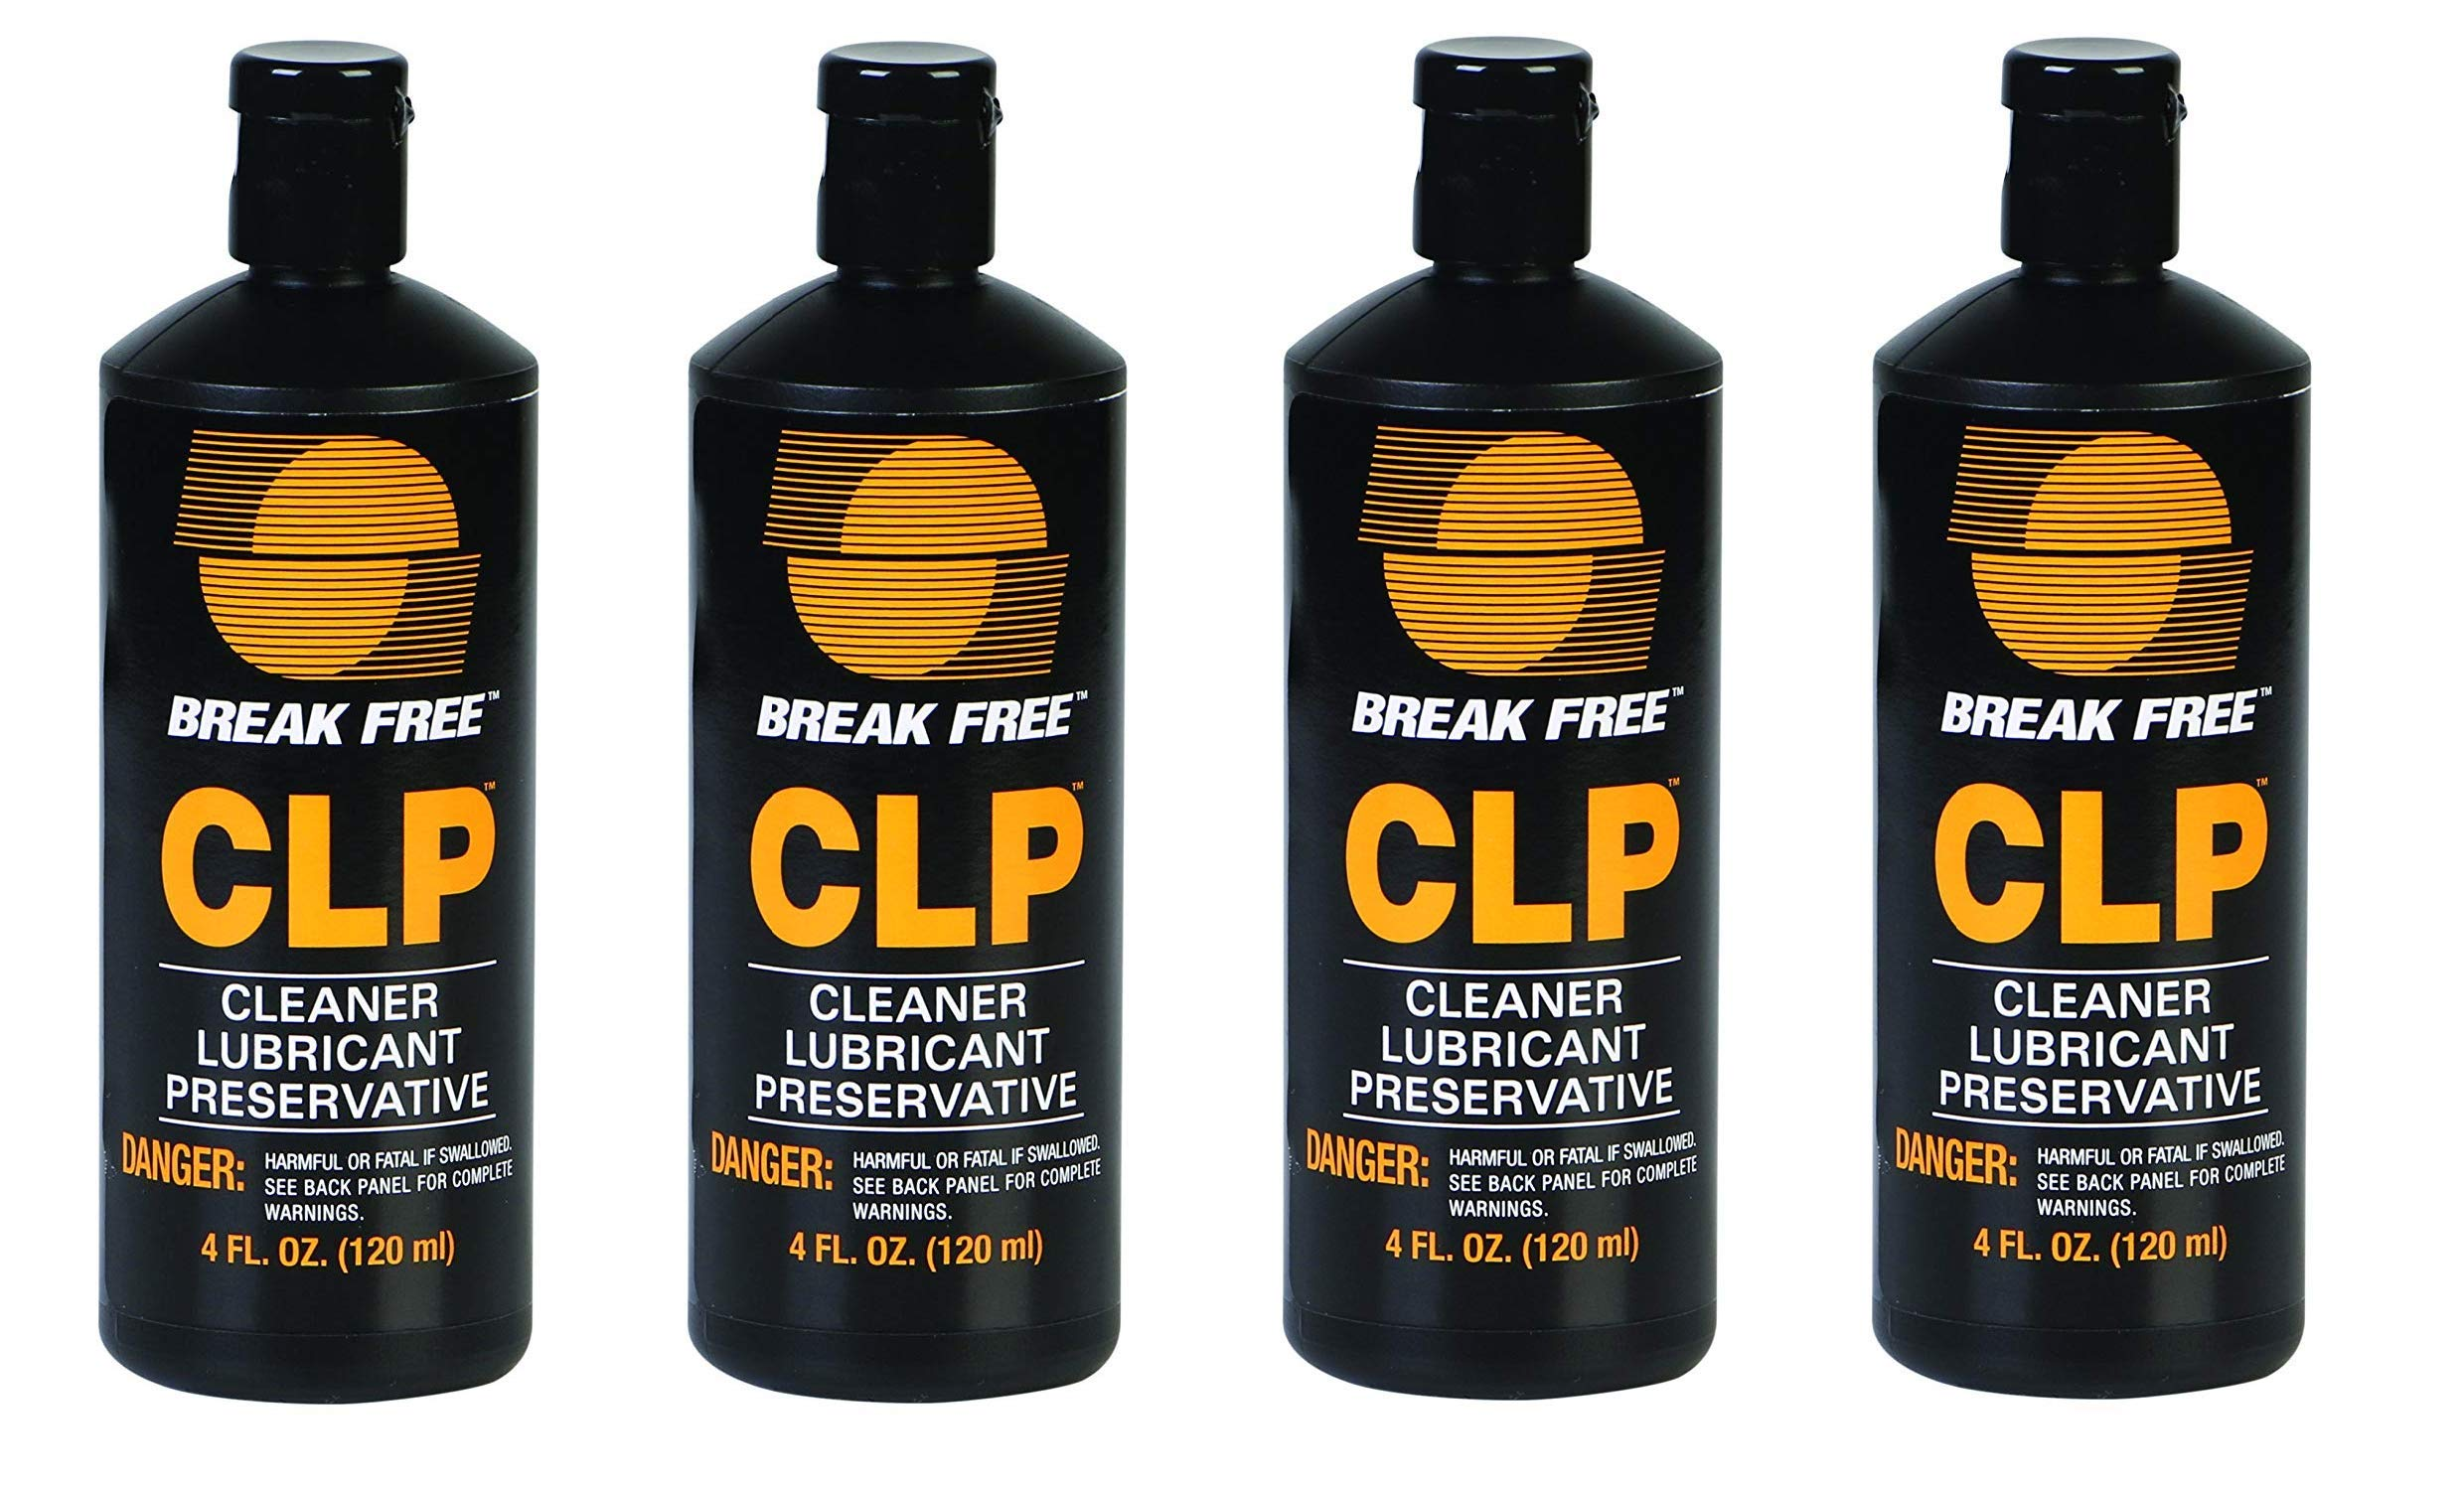 BreakFree CLP-4 Cleaner Lubricant Preservative Squeeze Bottle (4 -Fluid Ounce) (Fоur Paсk)